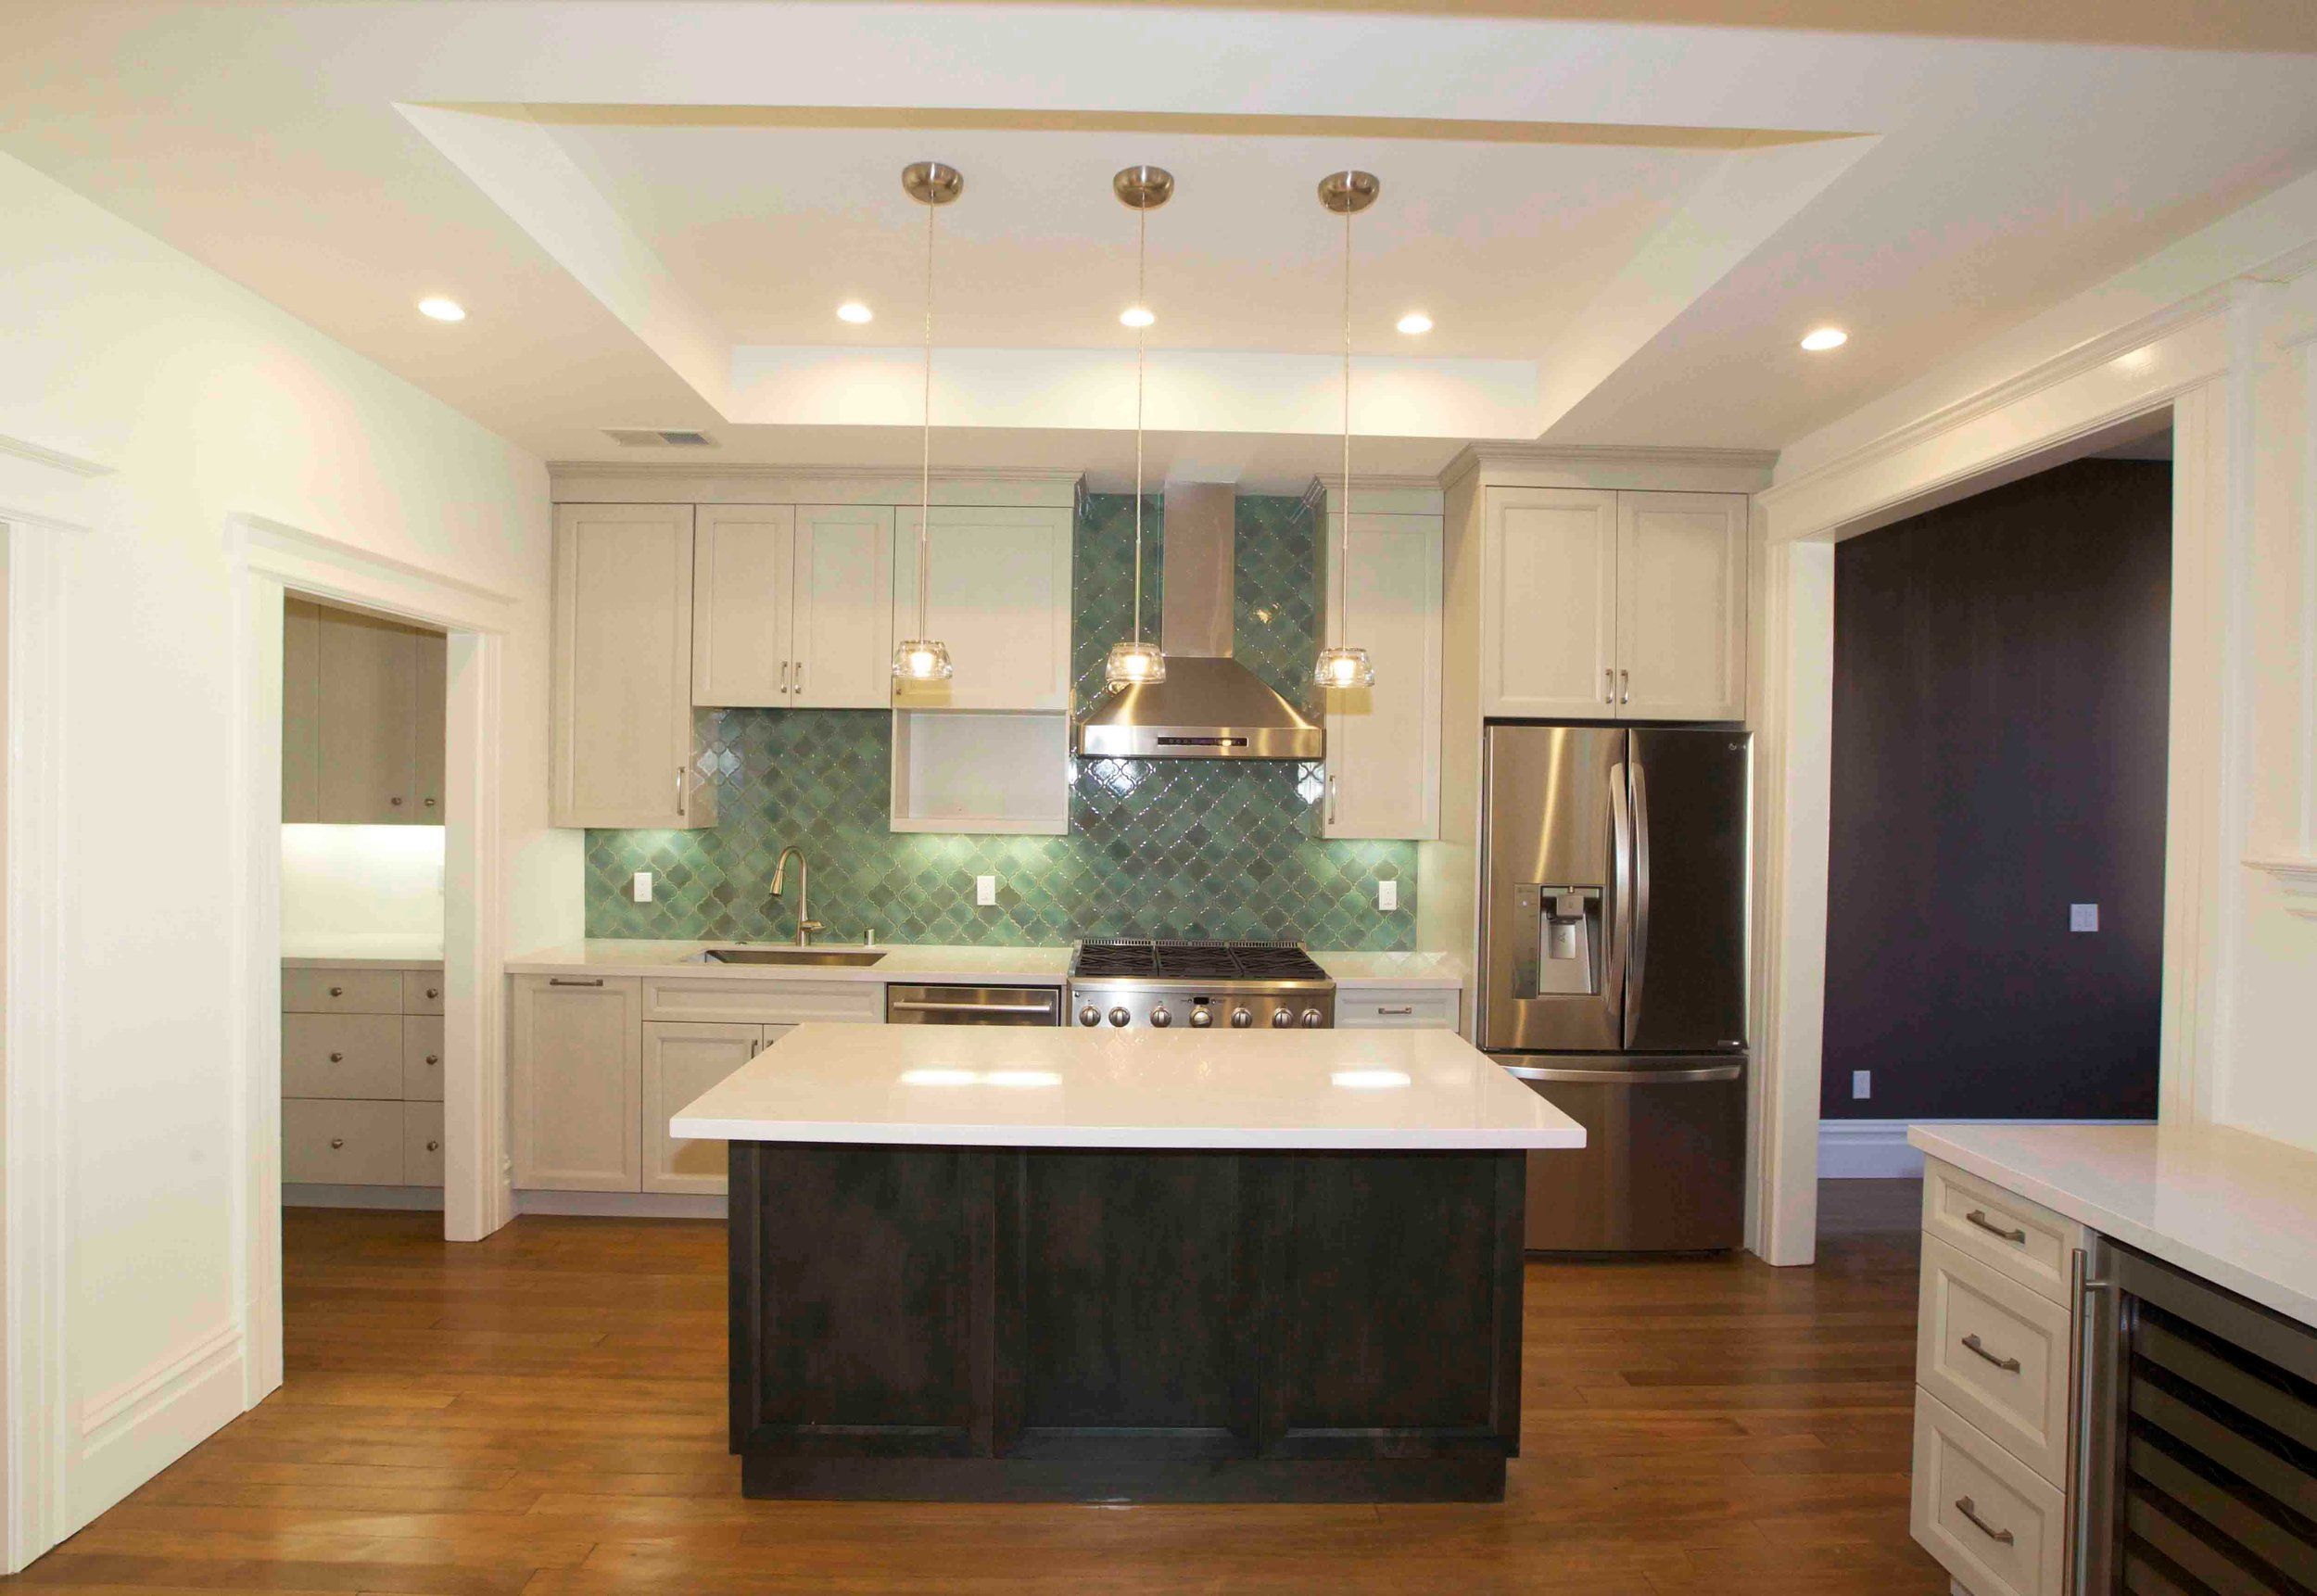 Kitchen Remodel and Interior Painting